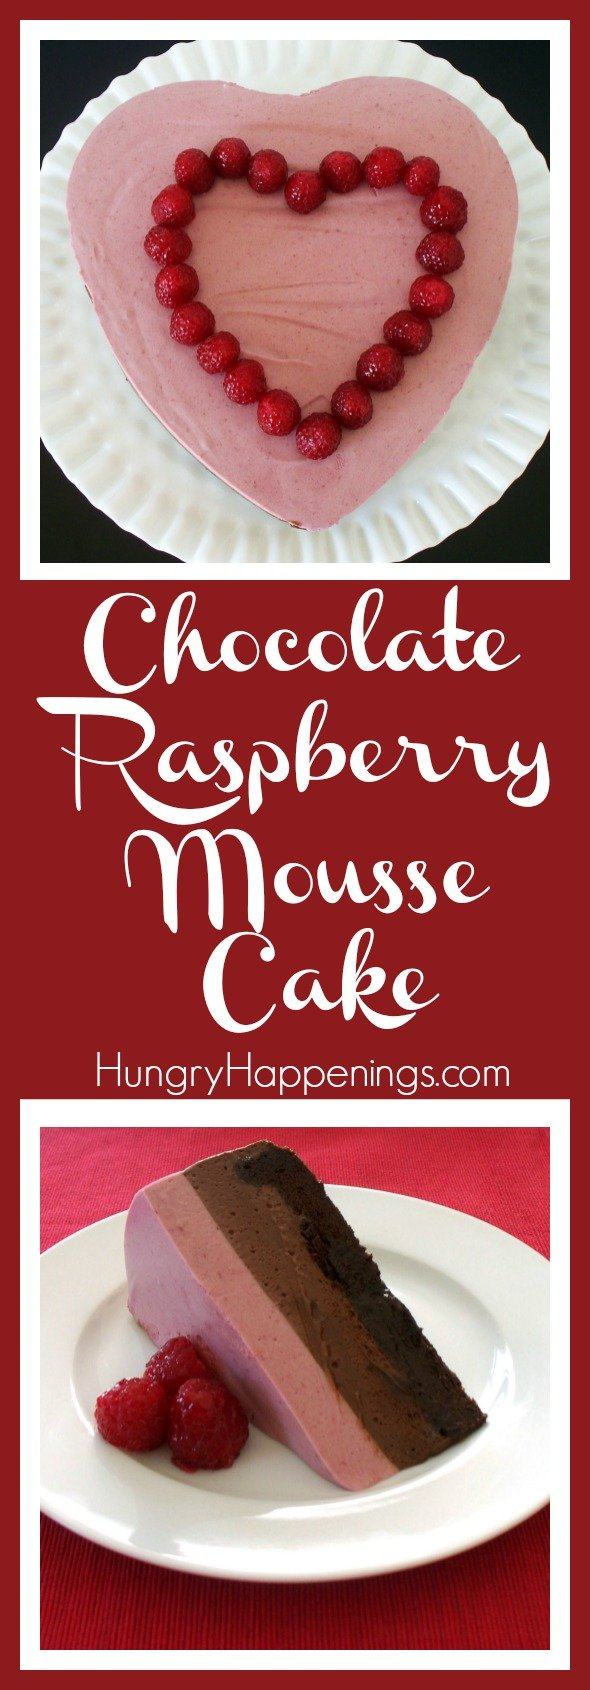 For everybody who wants to put a little extra effort in this holiday, whip up this Chocolate Raspberry Mousse Cake and let your lover gracefully fall into a fluffy sugar coma.